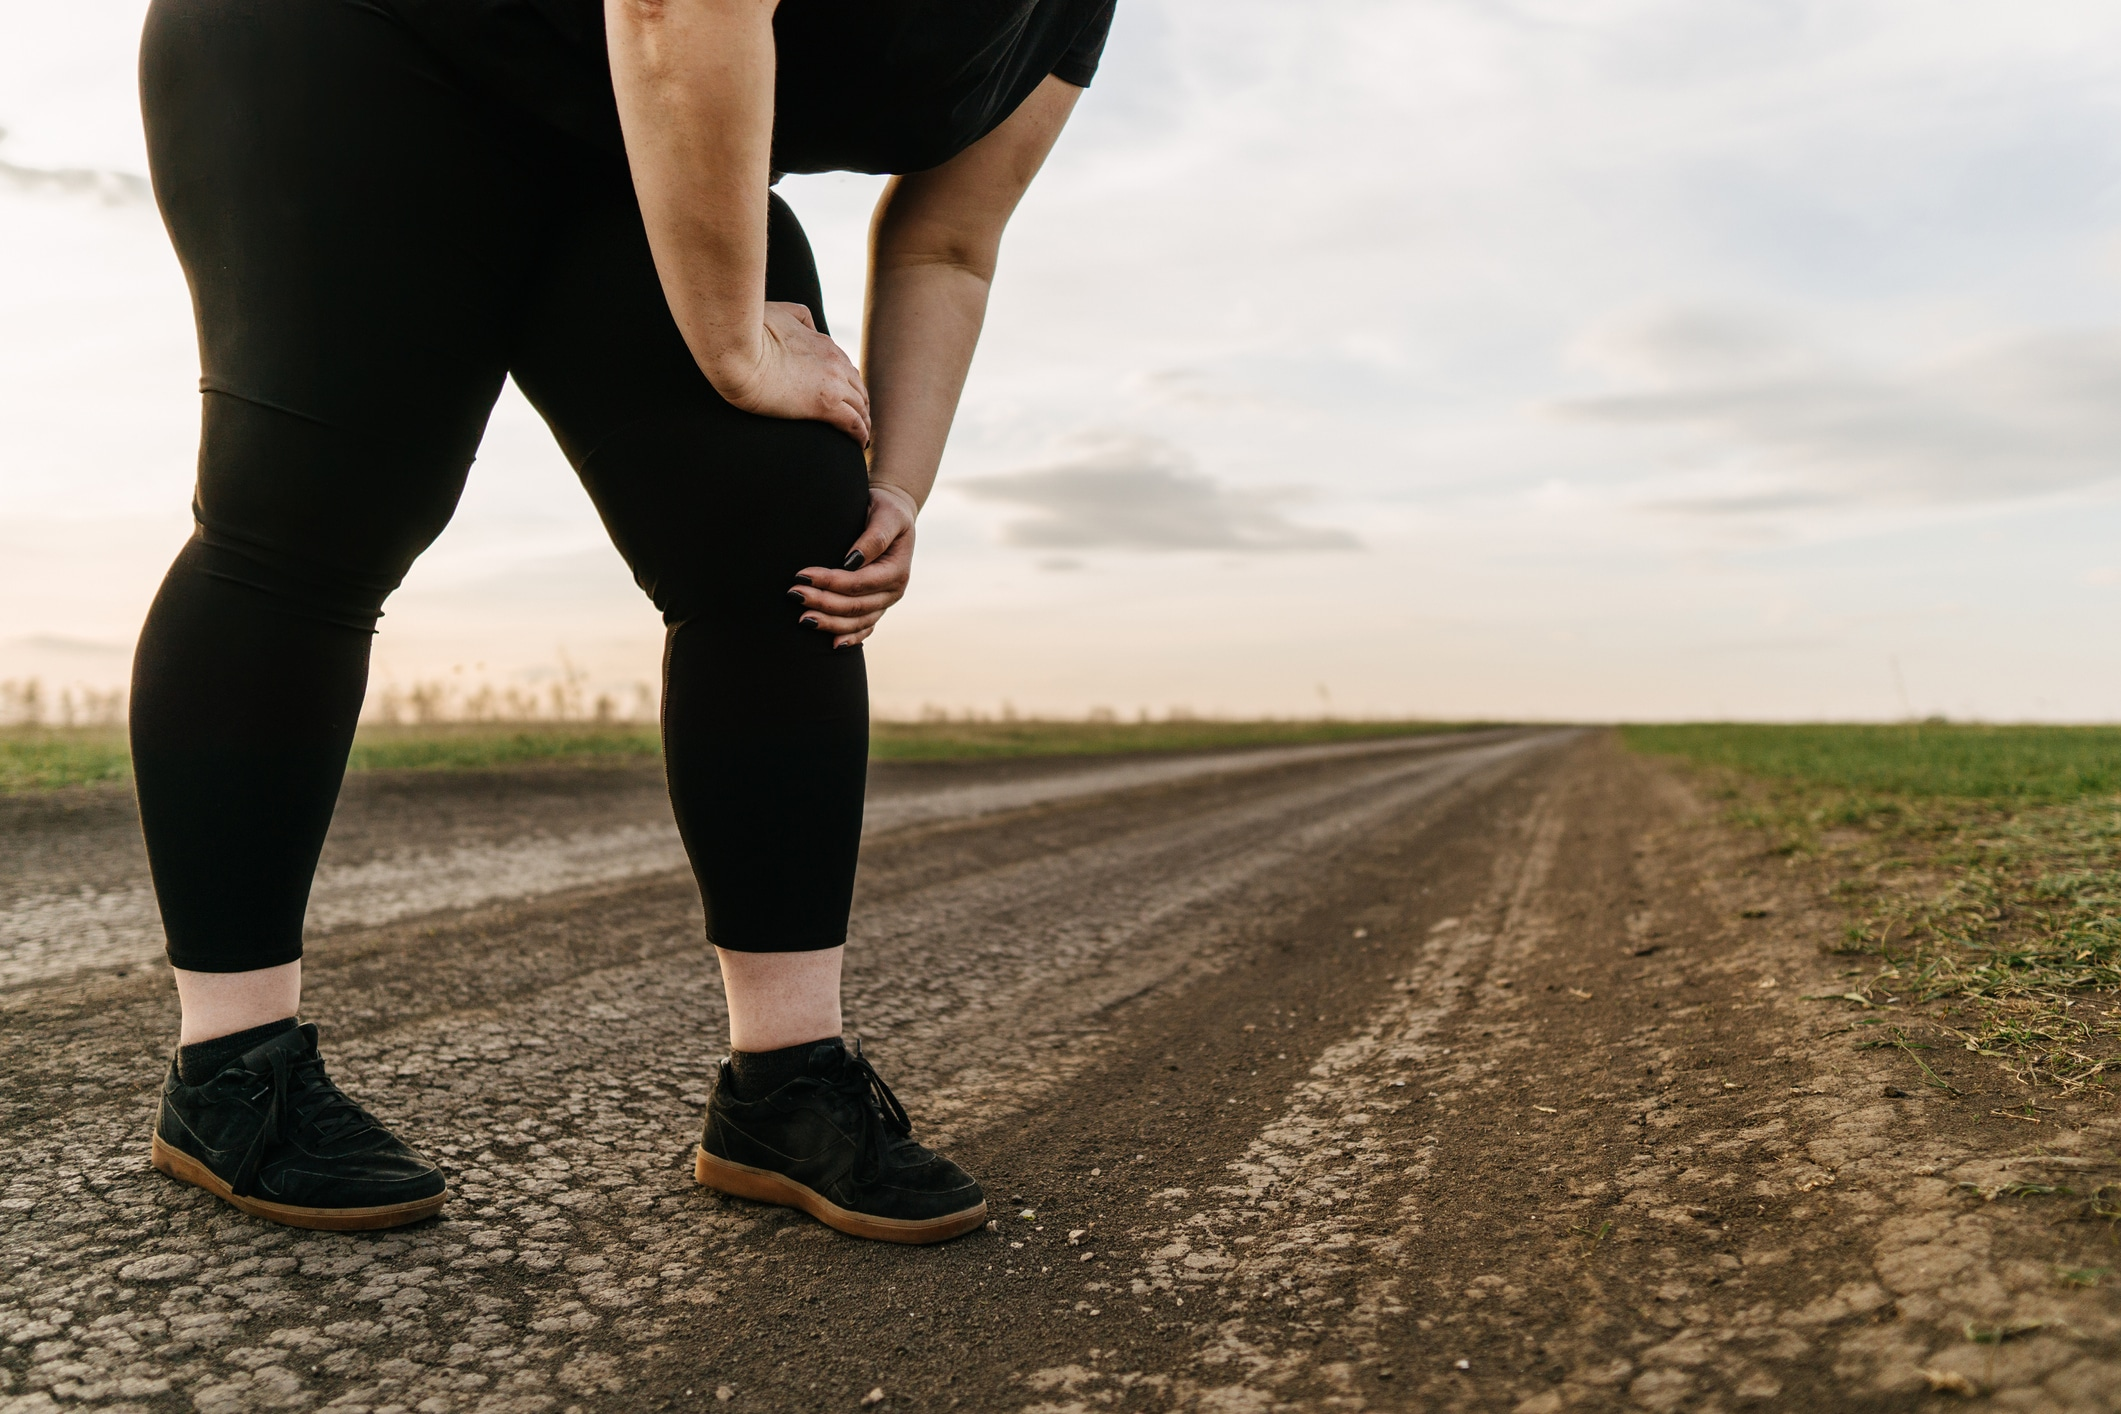 There May be a Link Between Obesity and Arthritis